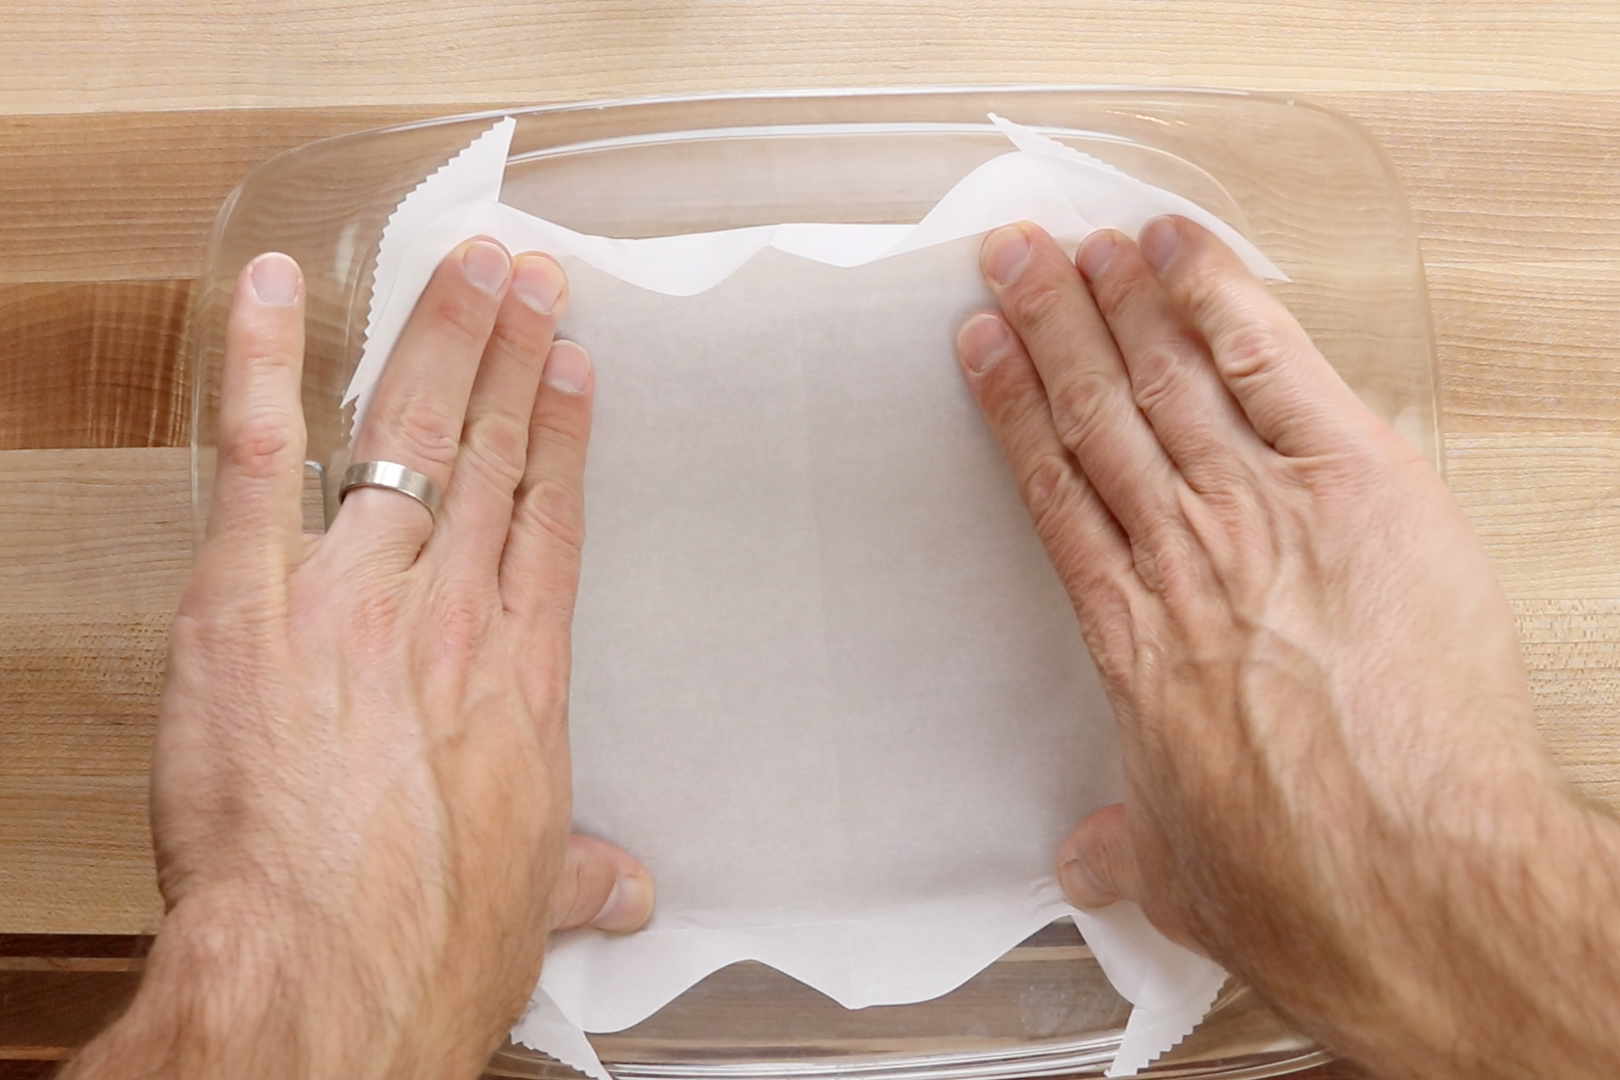 1. Preheat oven to 350 degrees. Line an 8x8-inch baking dish with parchment paper. -